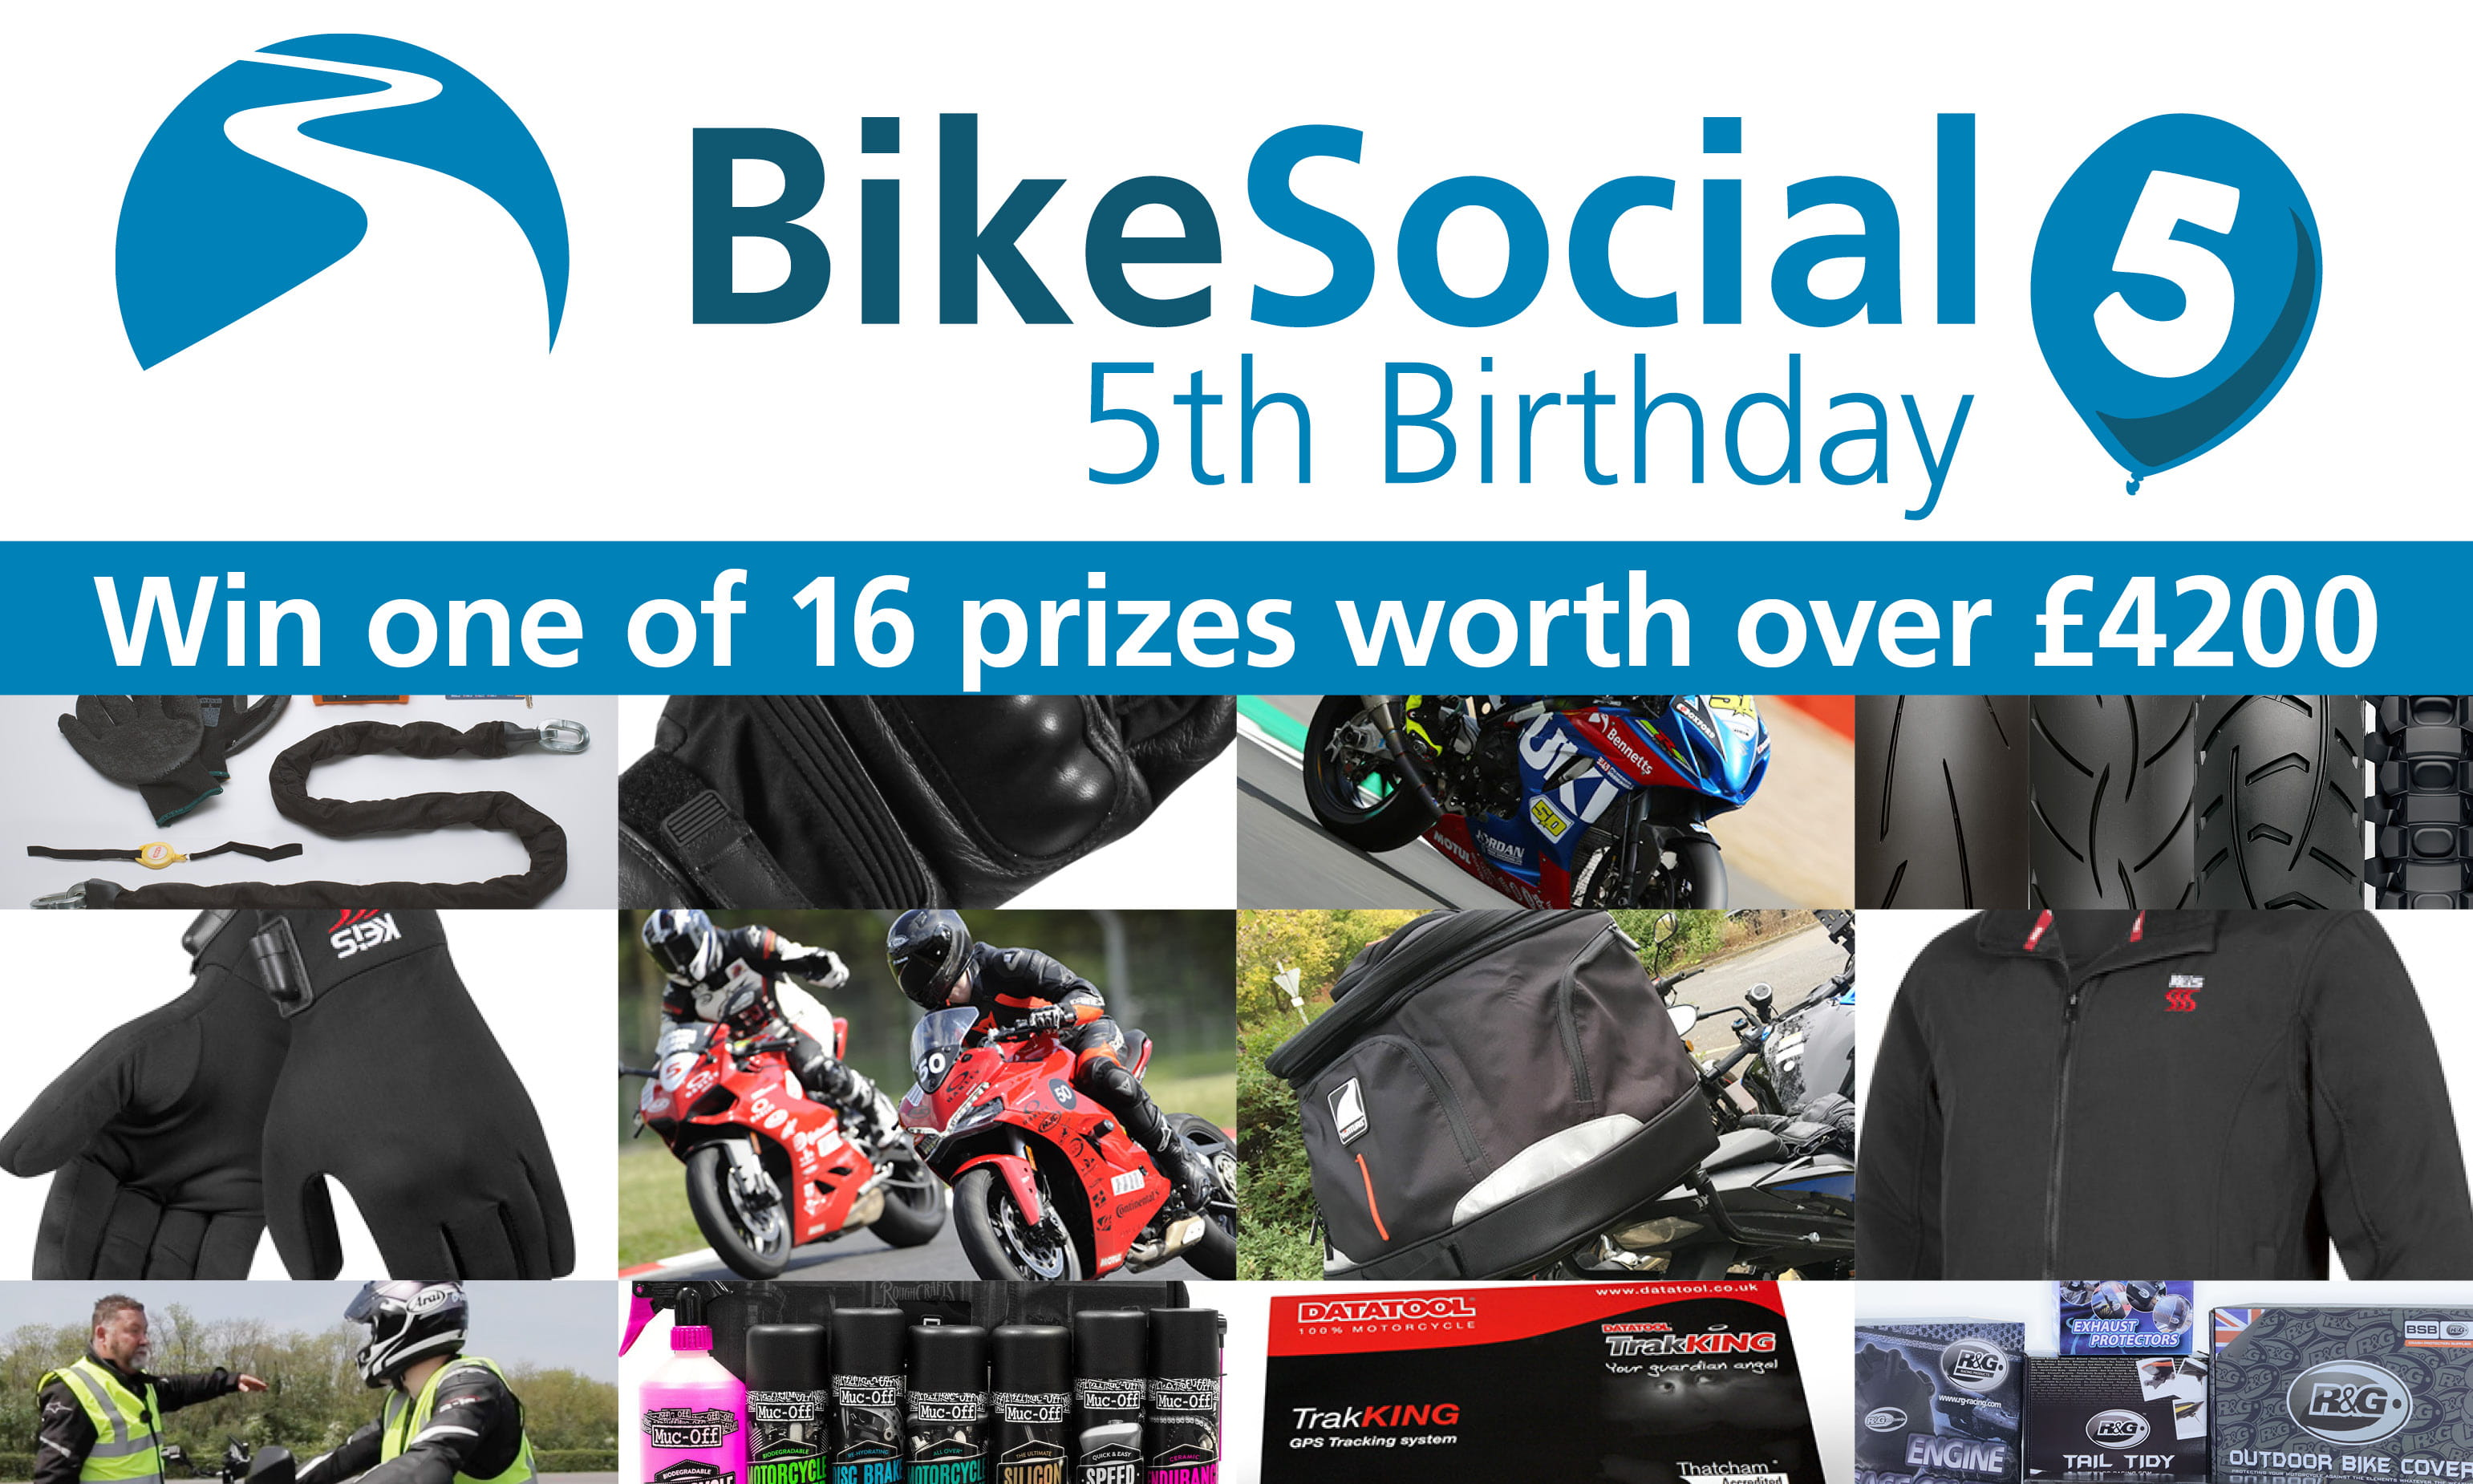 Win motorcycle prizes